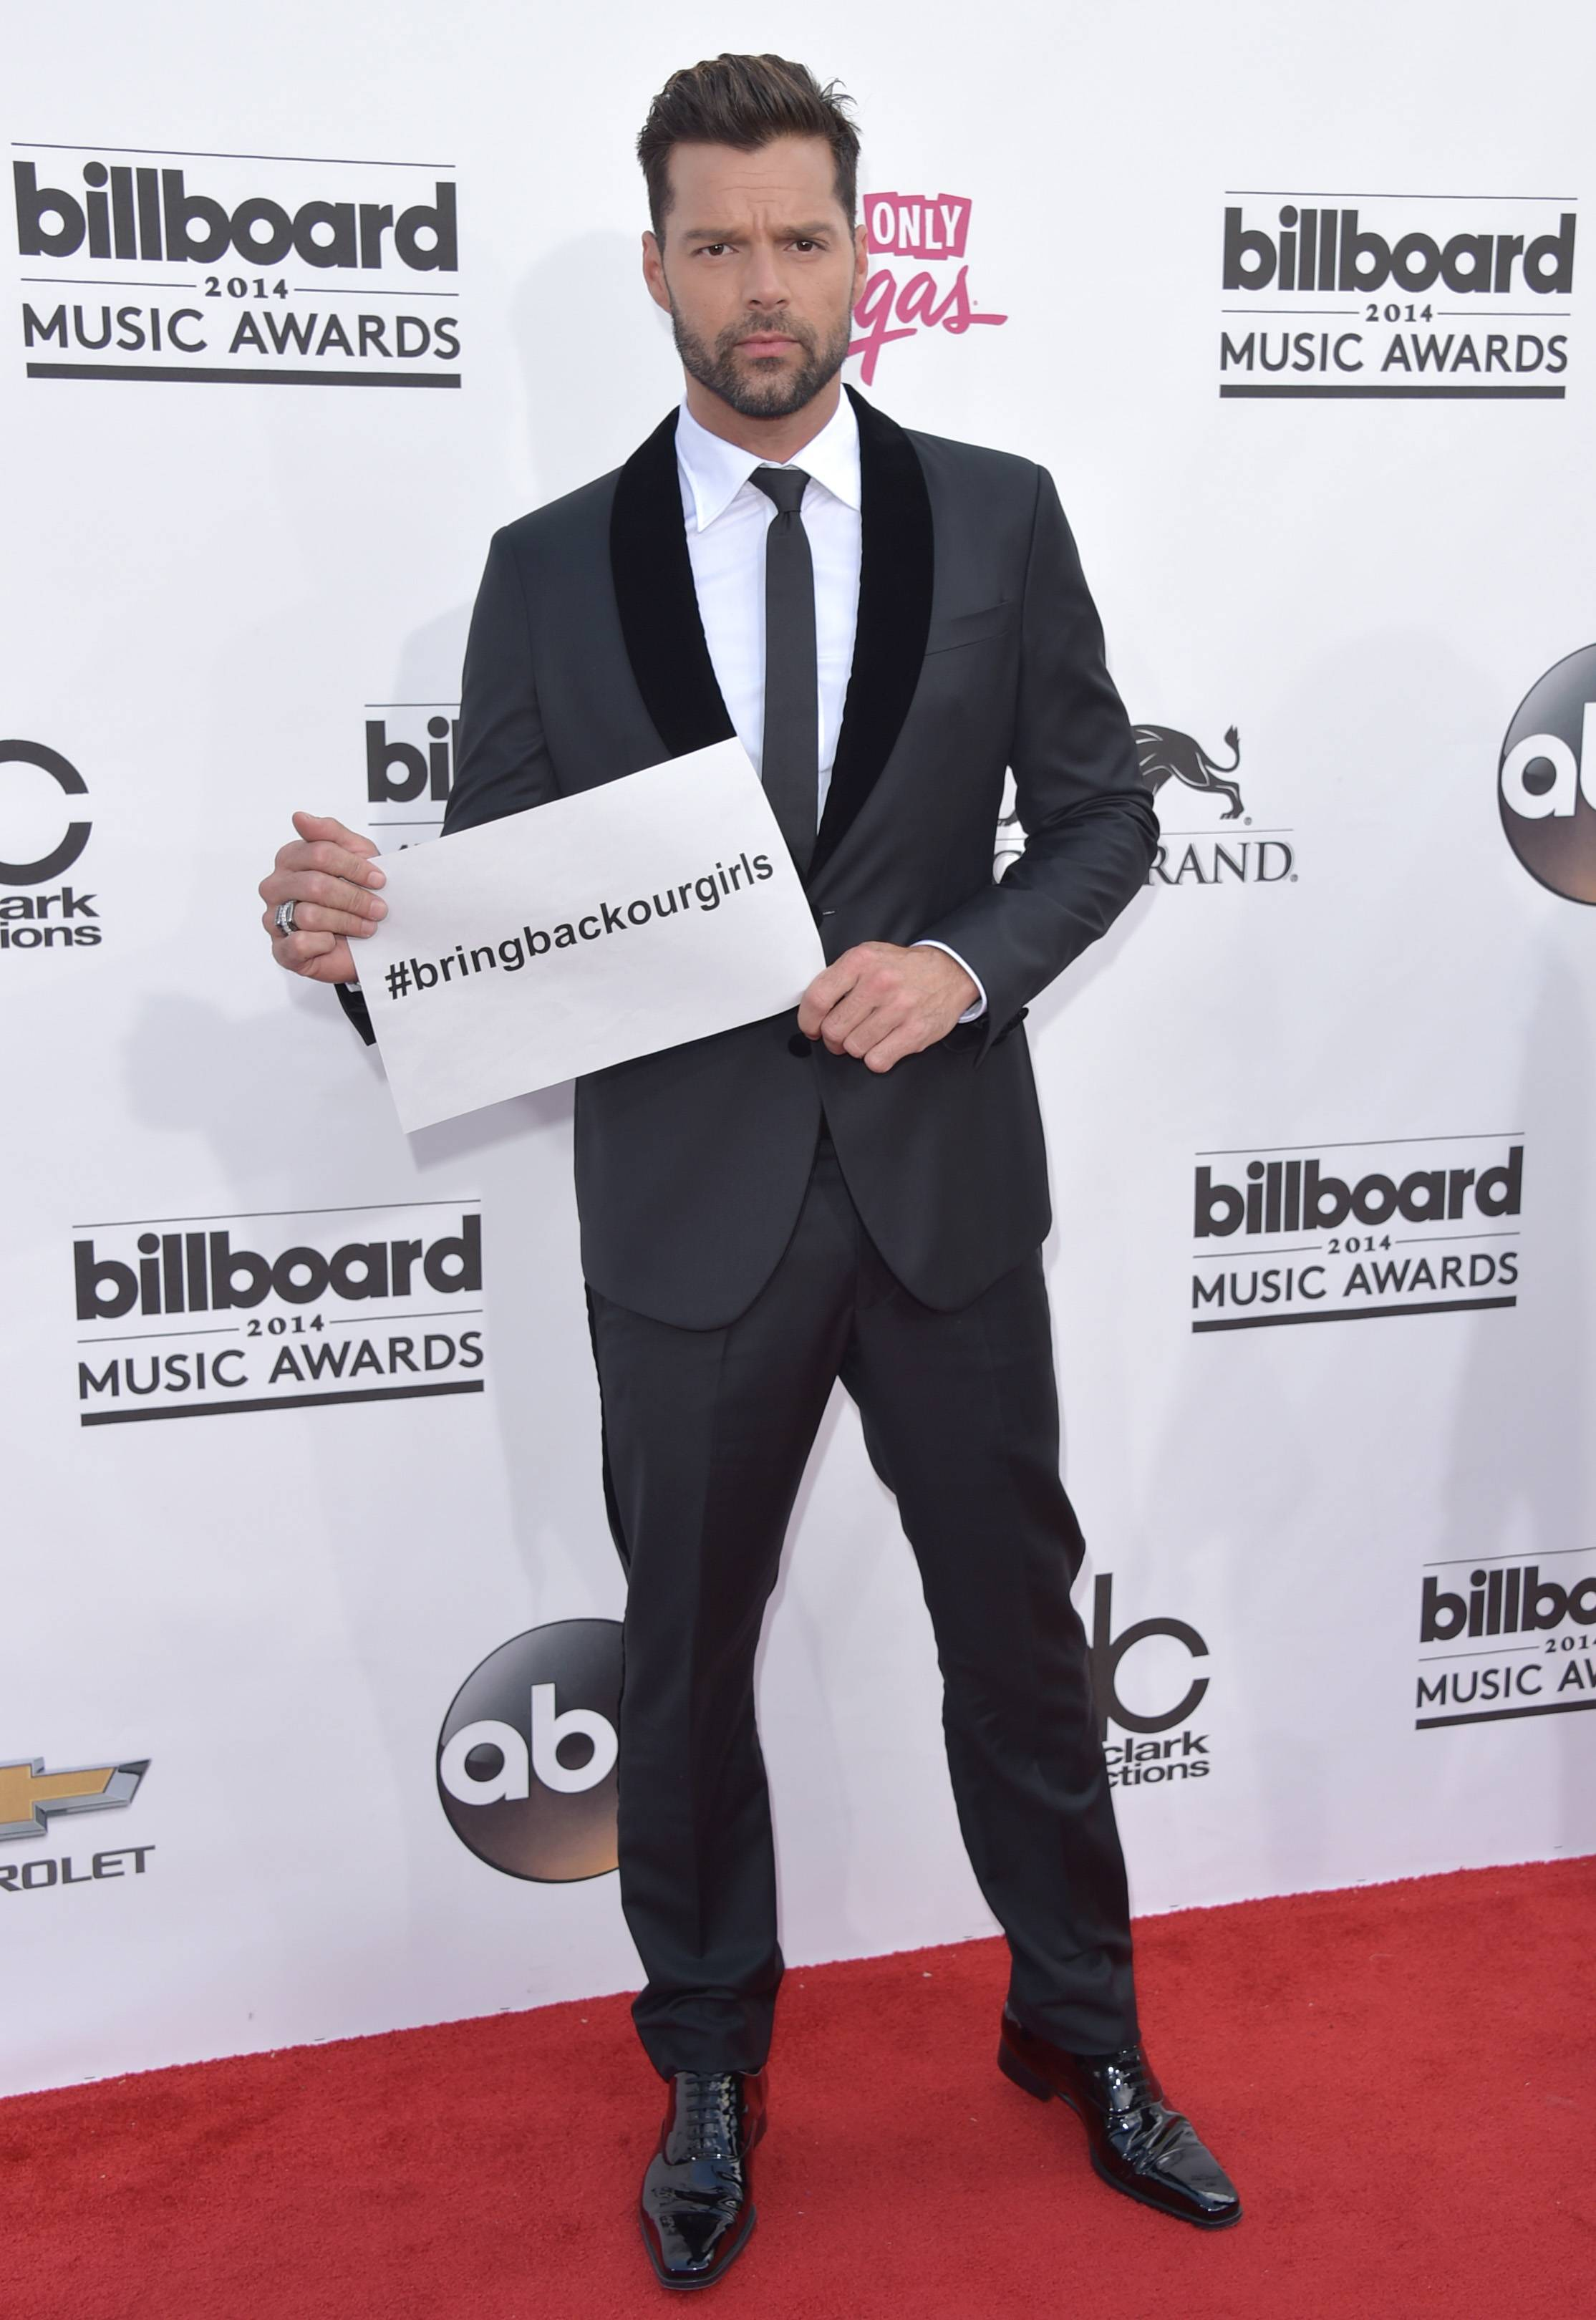 Ricky Martin arrives at the Billboard Music Awards at the MGM Grand Garden Arena on Sunday, May 18, 2014, in Las Vegas.